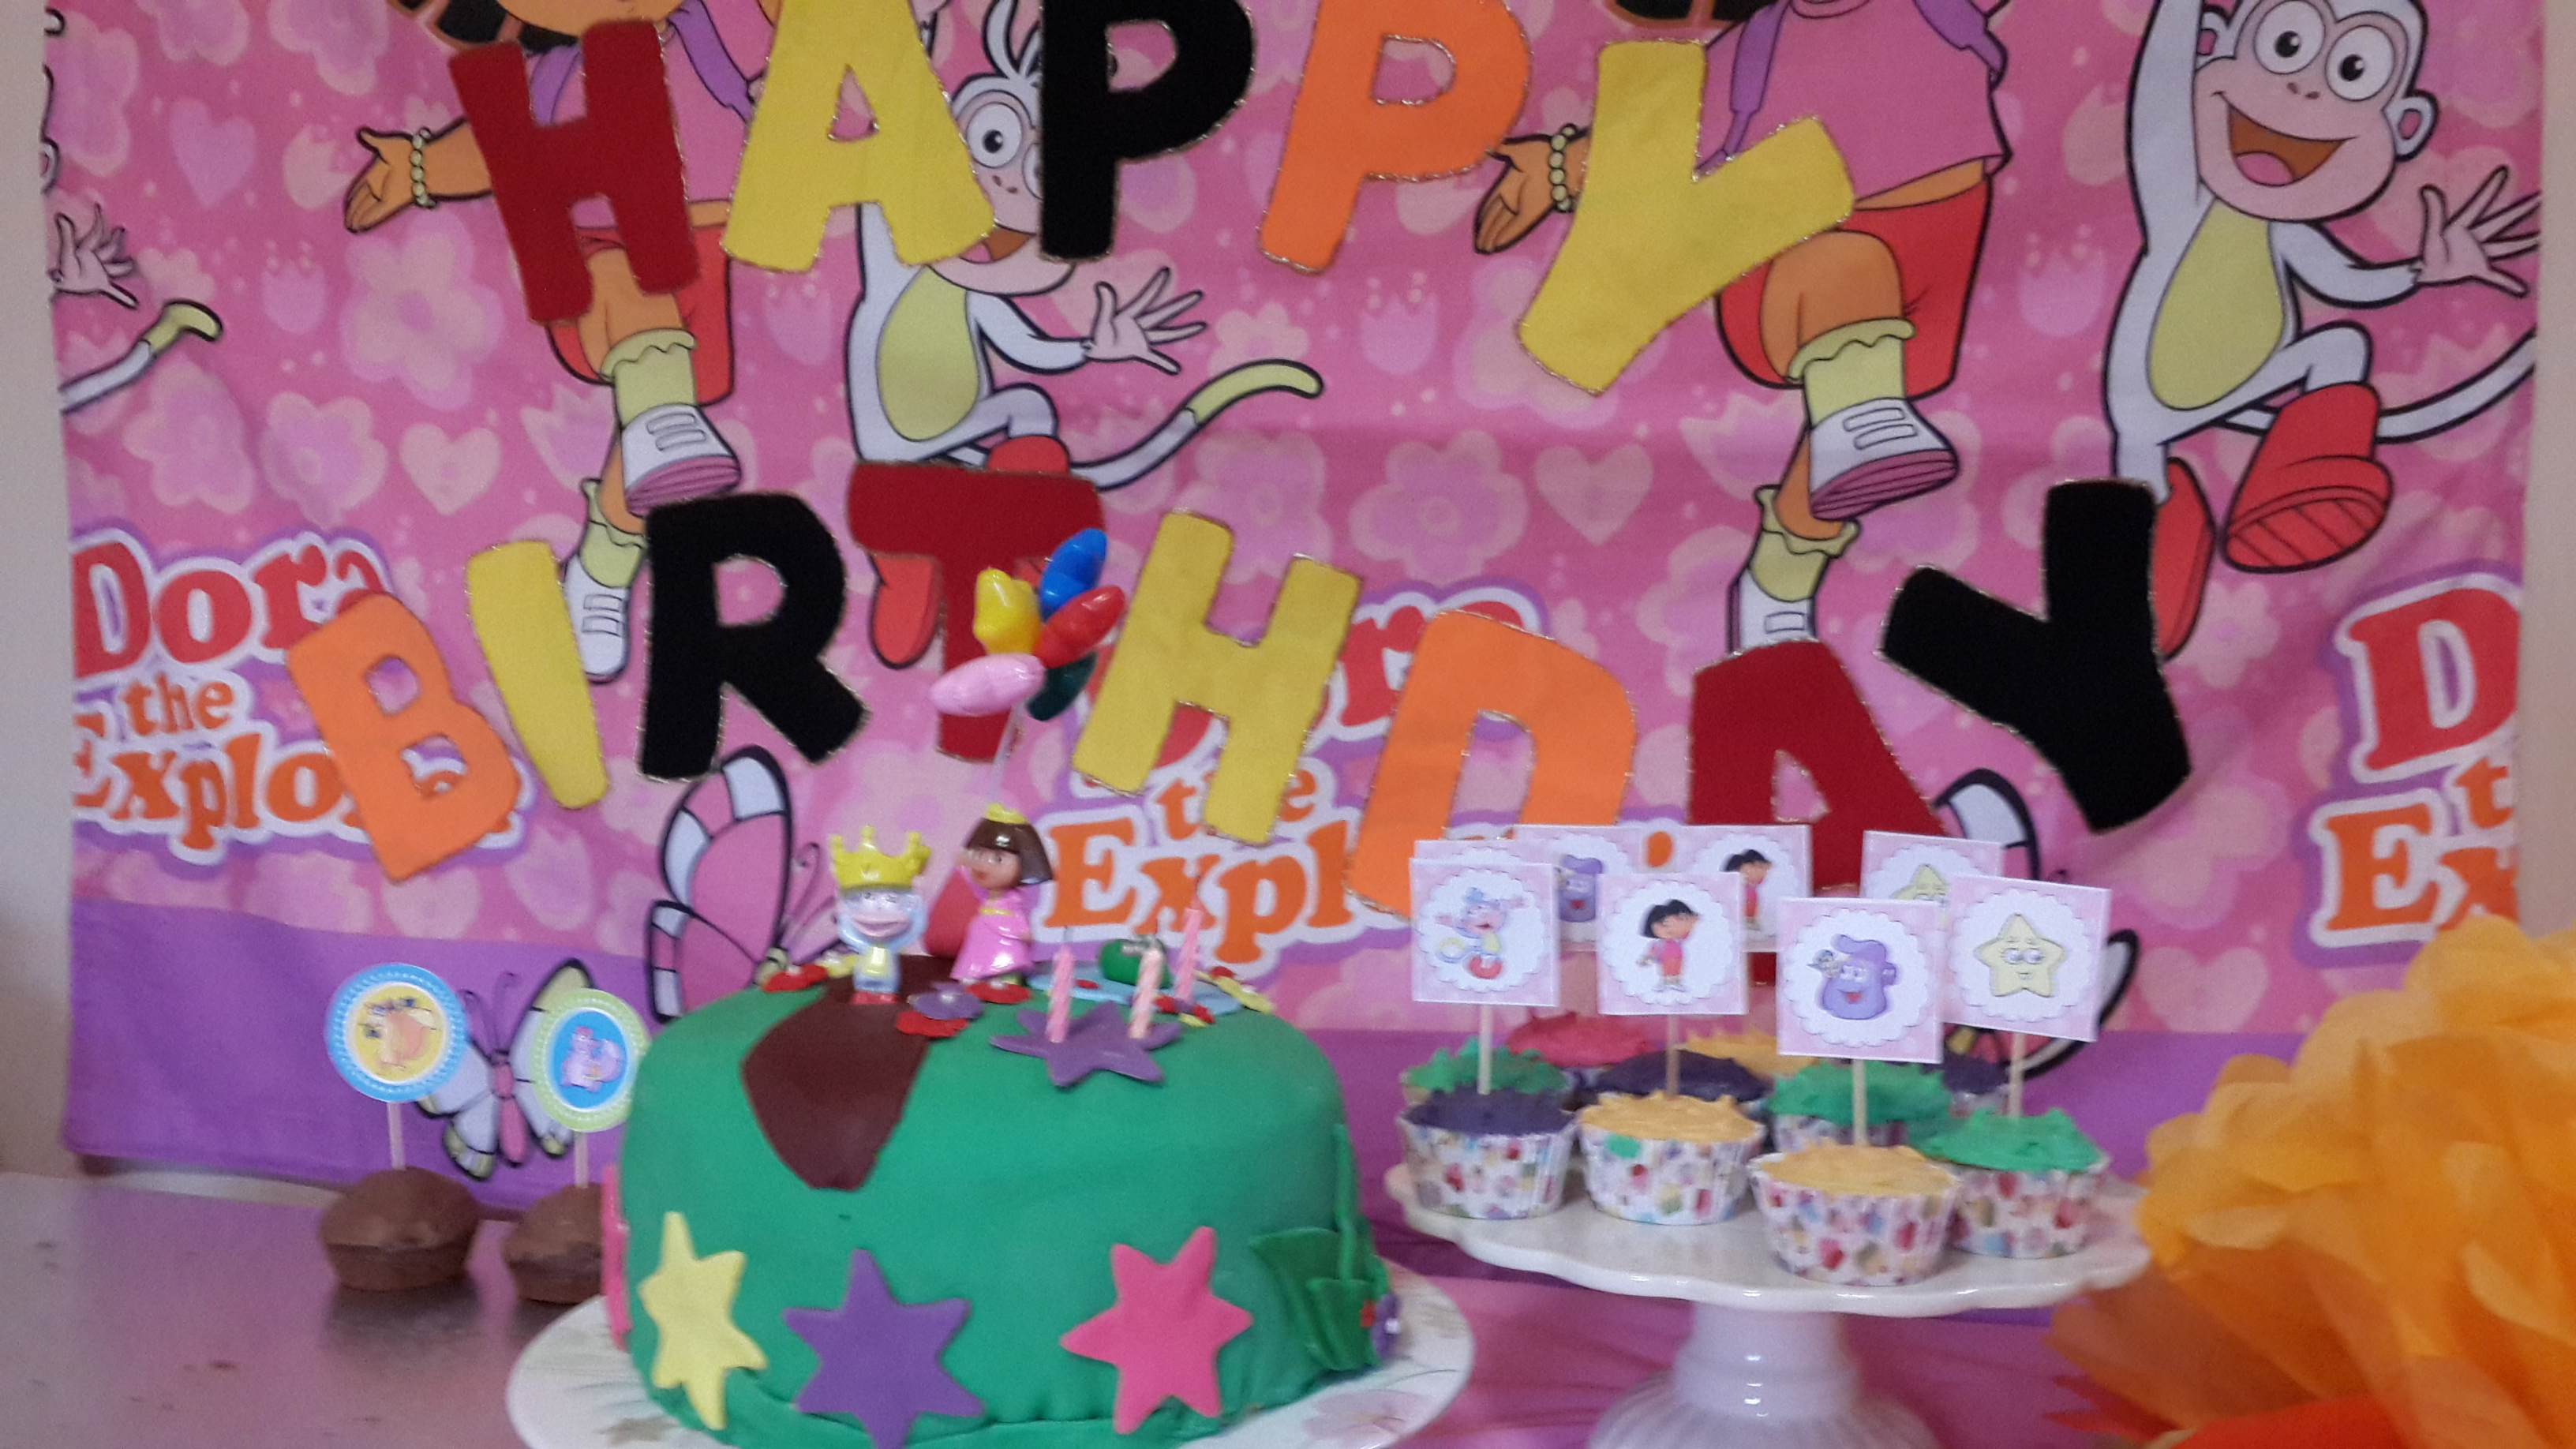 MorganLees Dora the Explorer Birthday Party Ideas Free Templates